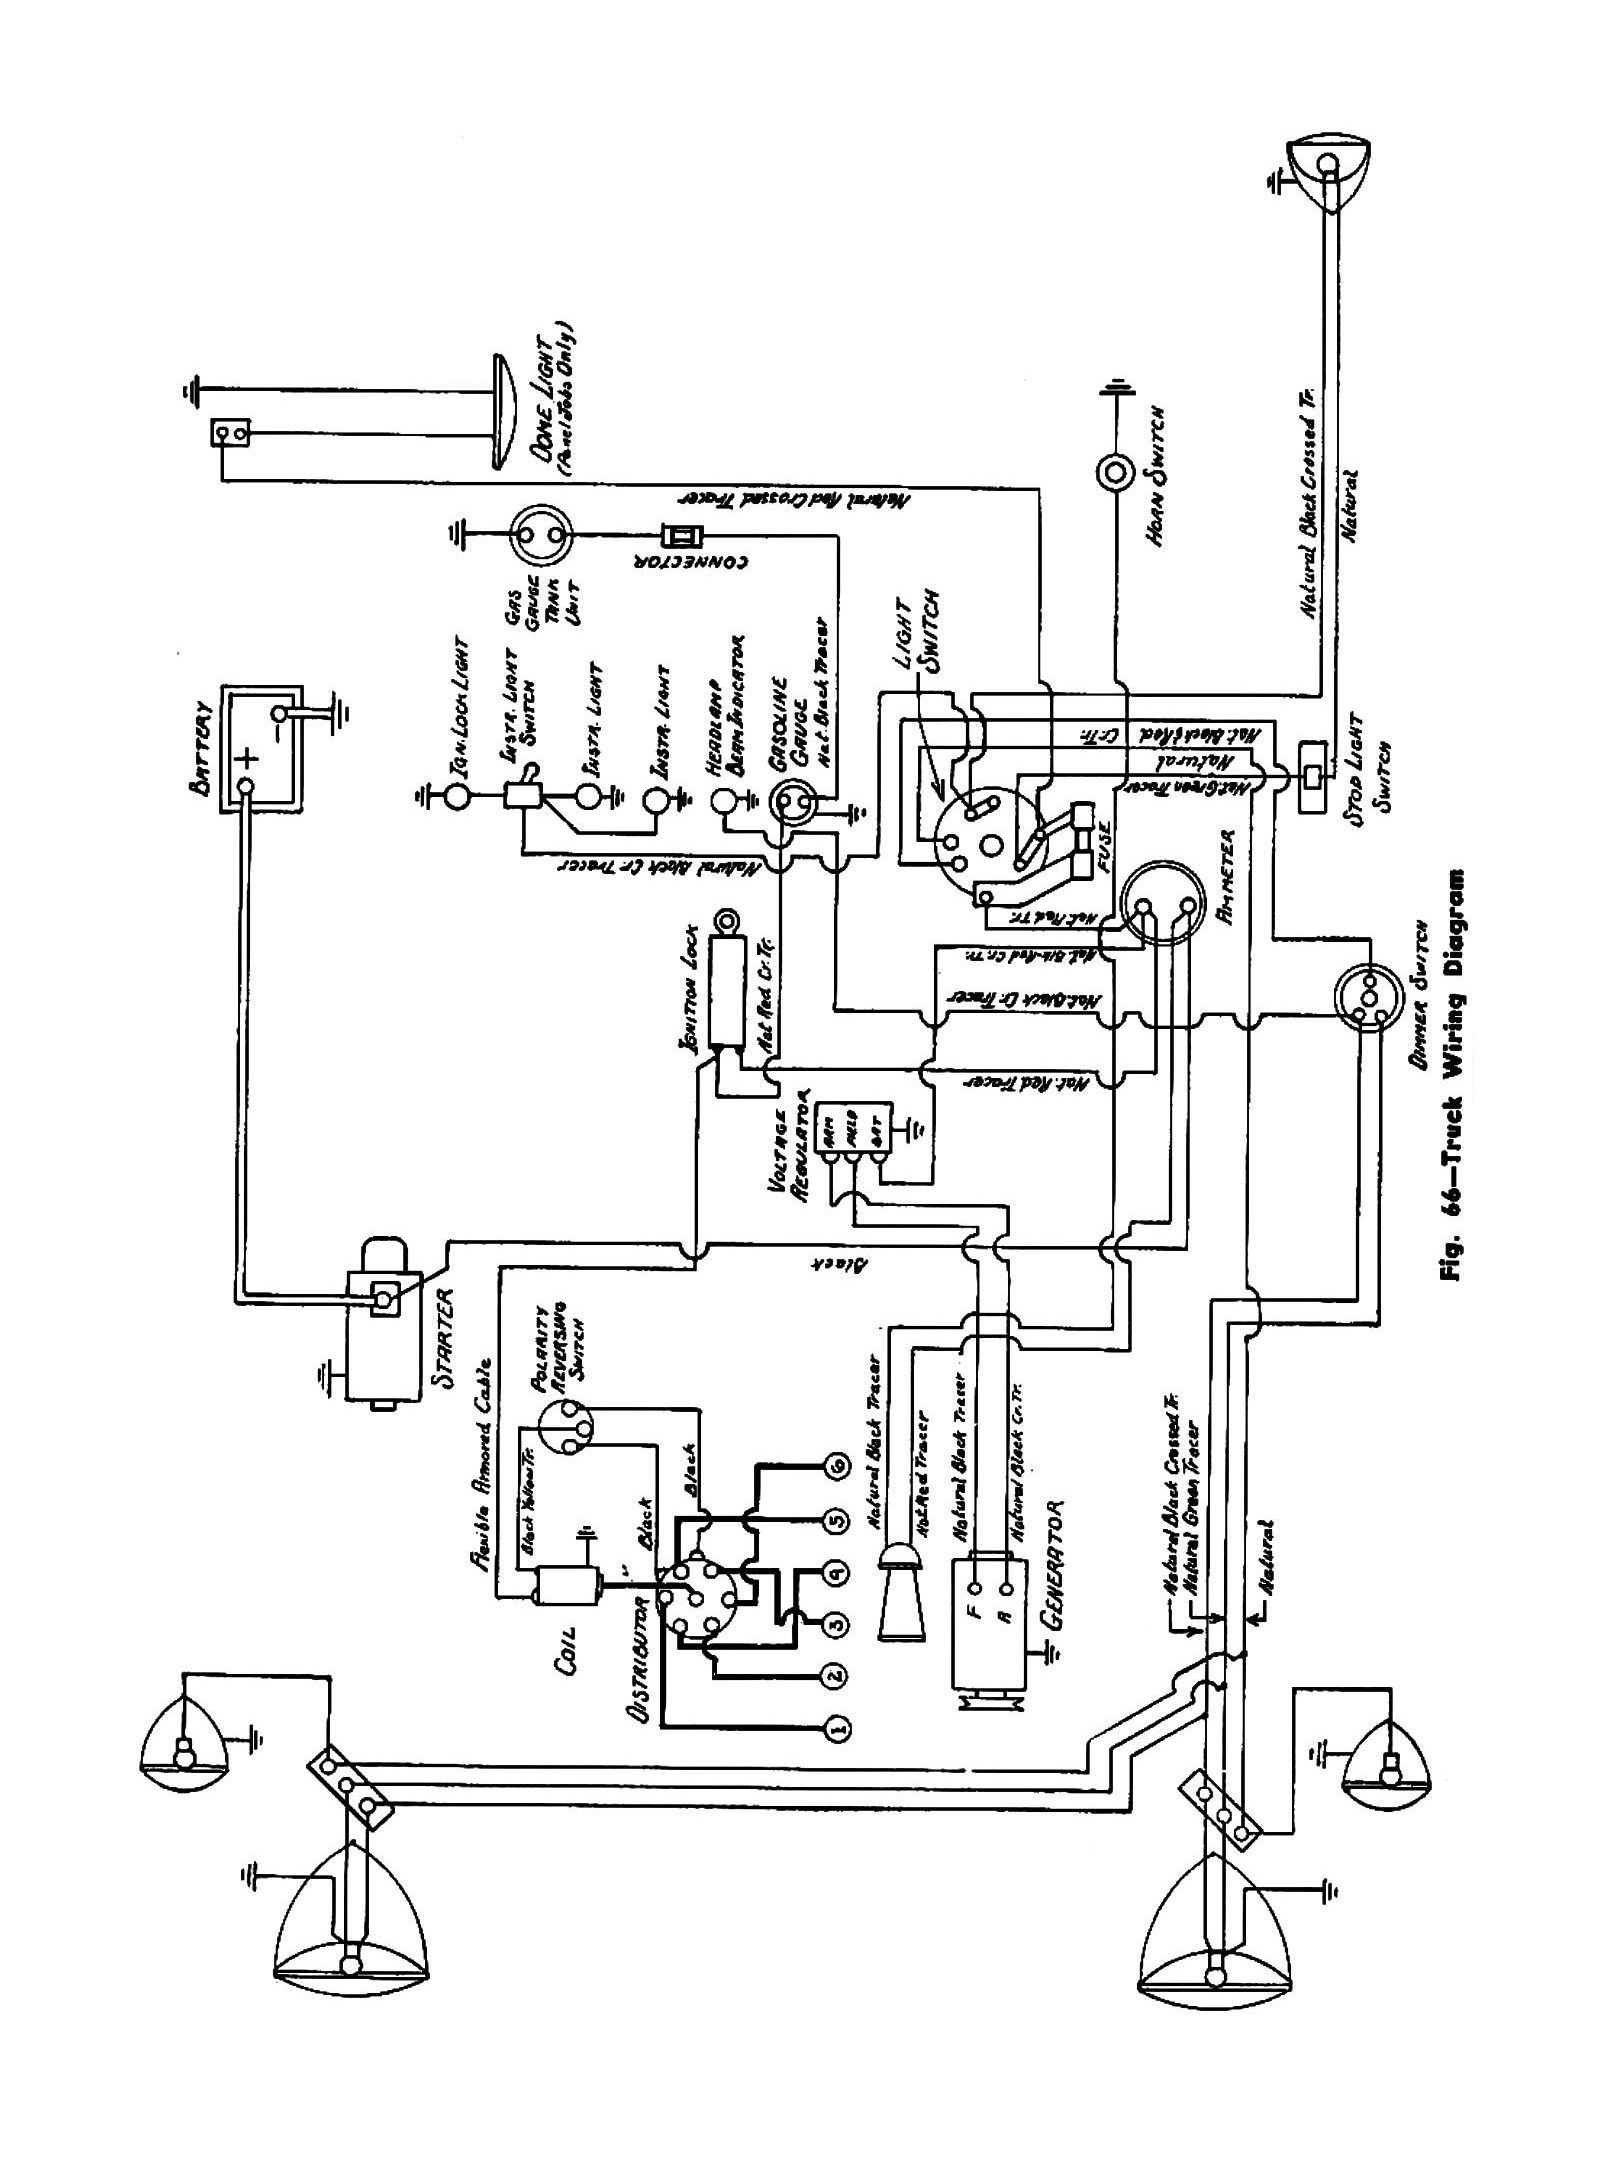 hight resolution of chevy wiring diagramschevy electrical wiring diagrams 2